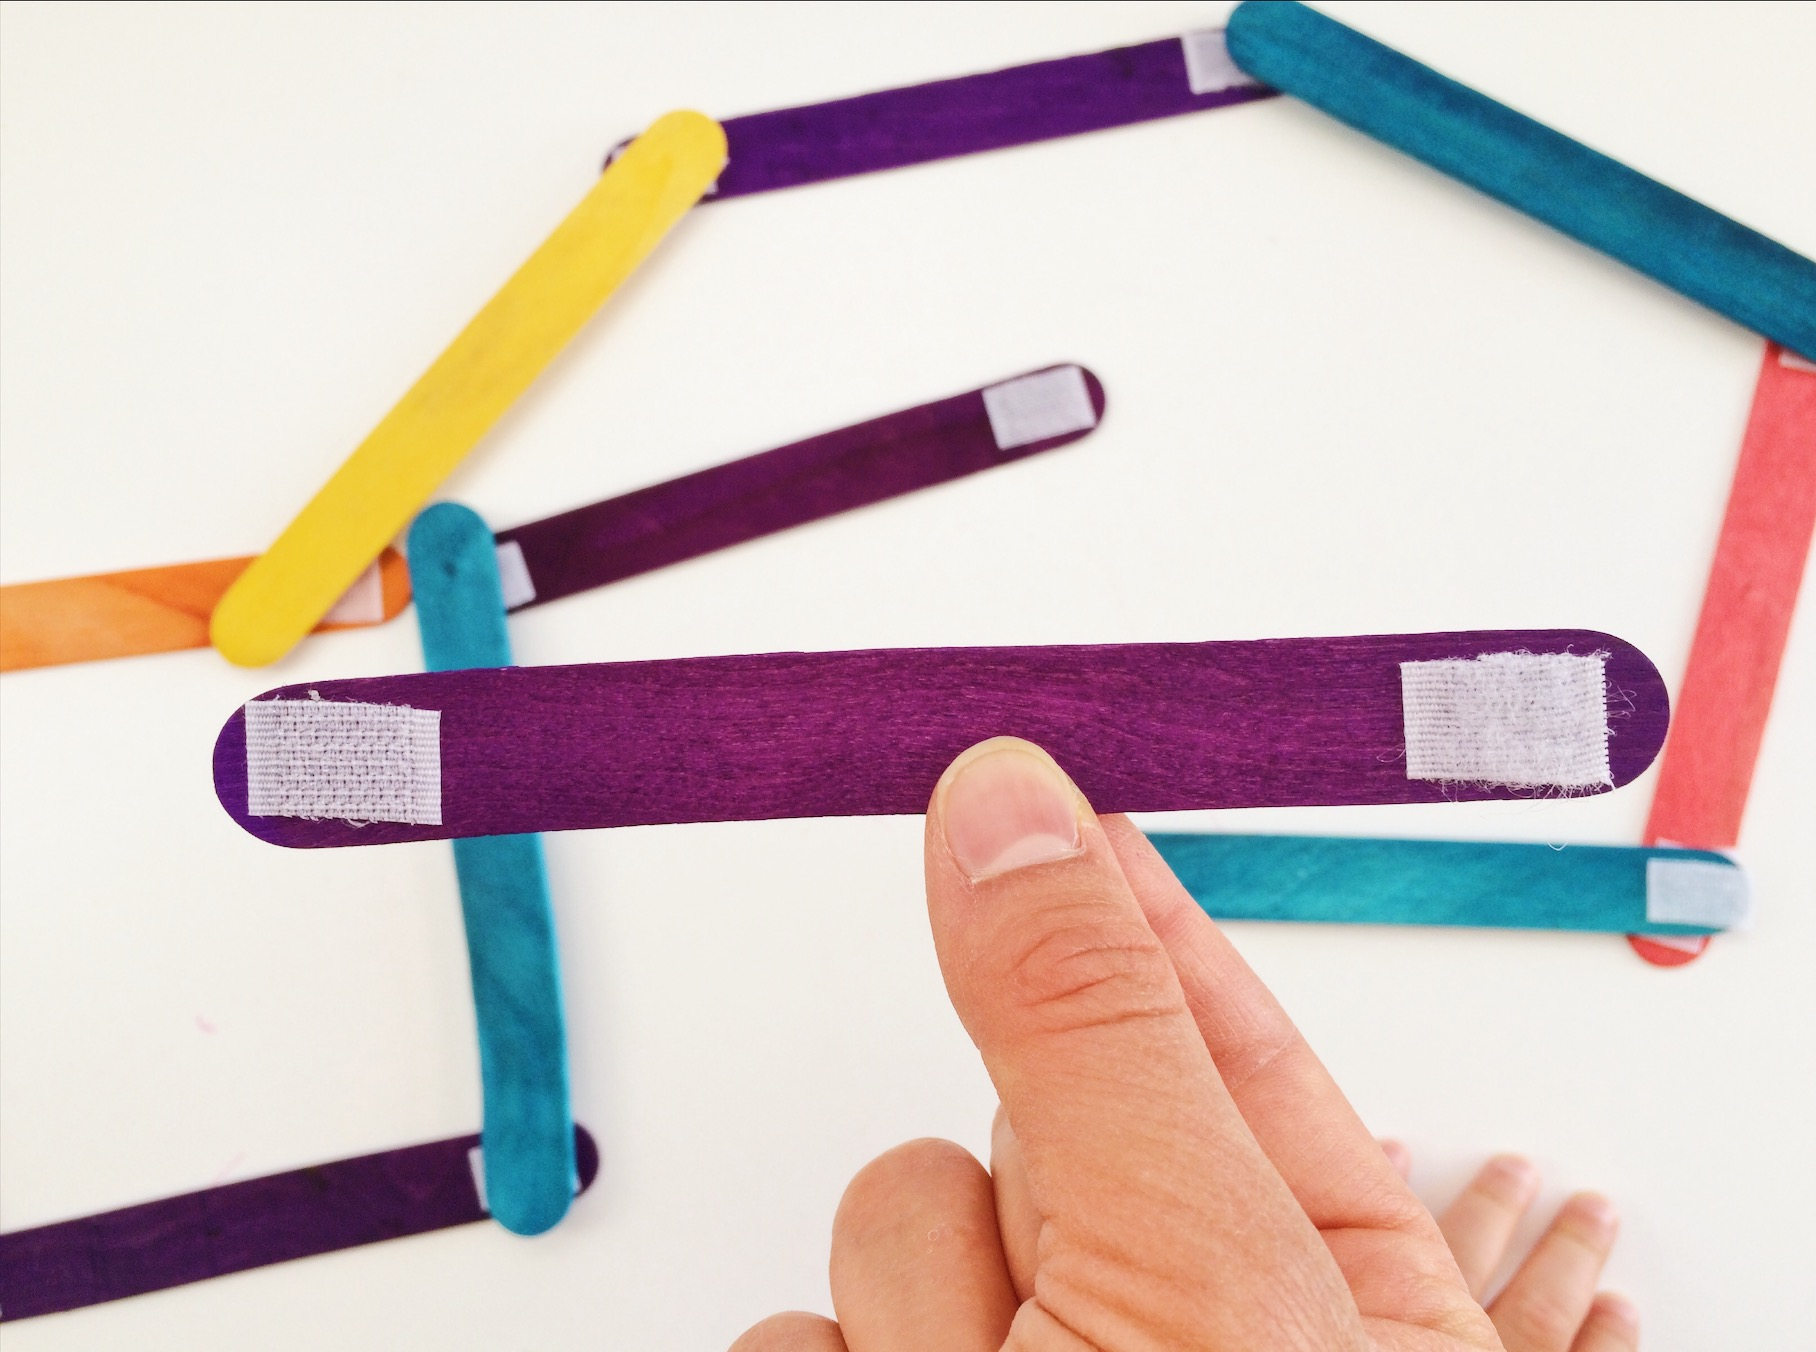 Purple popsicle stick with velcro stuck on either end